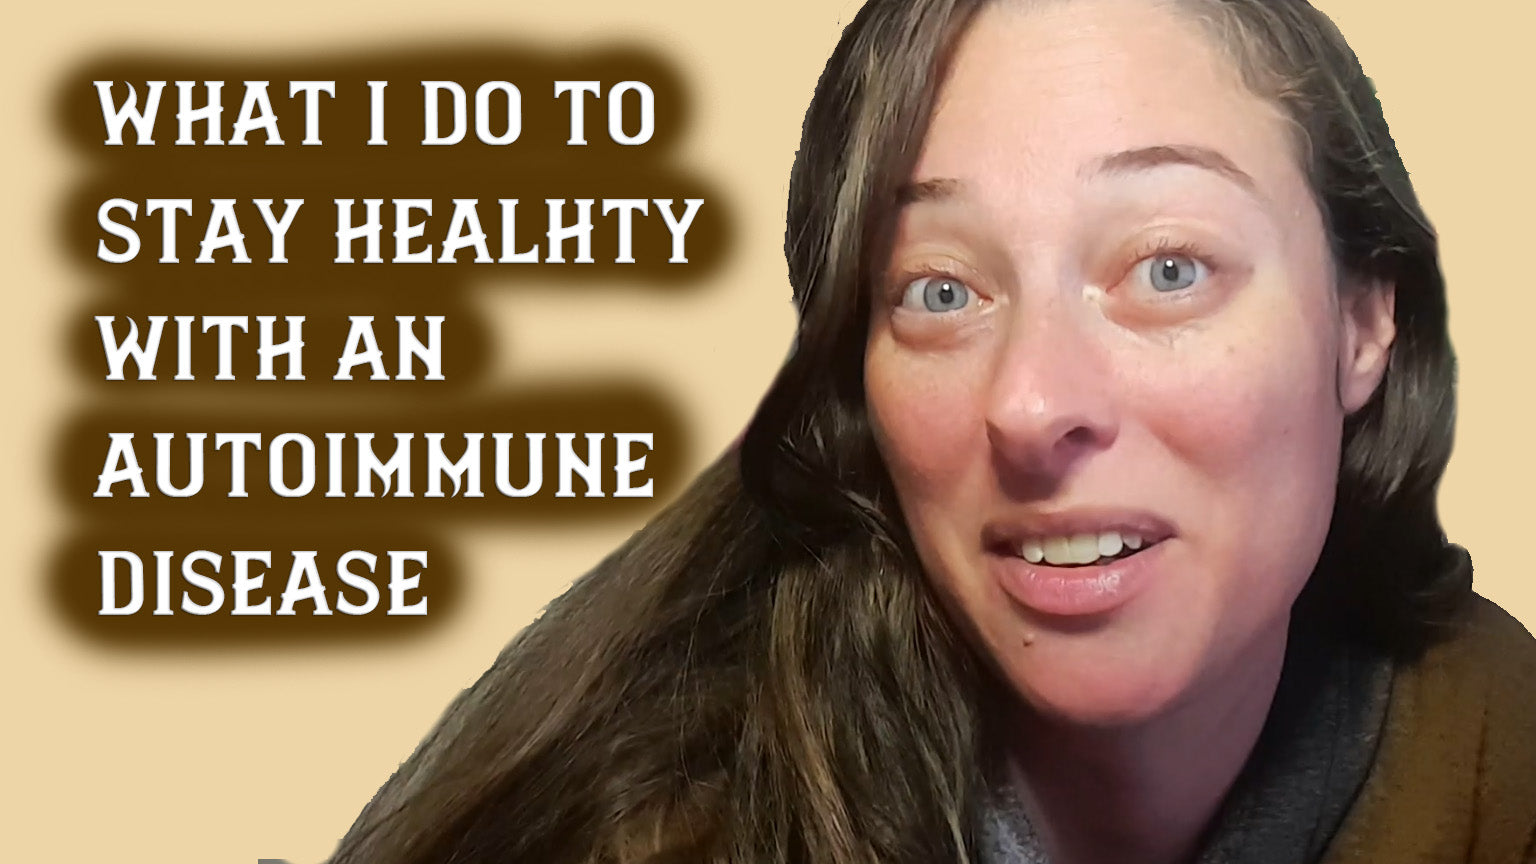 What I do to stay healthy with an autoimmune disease?